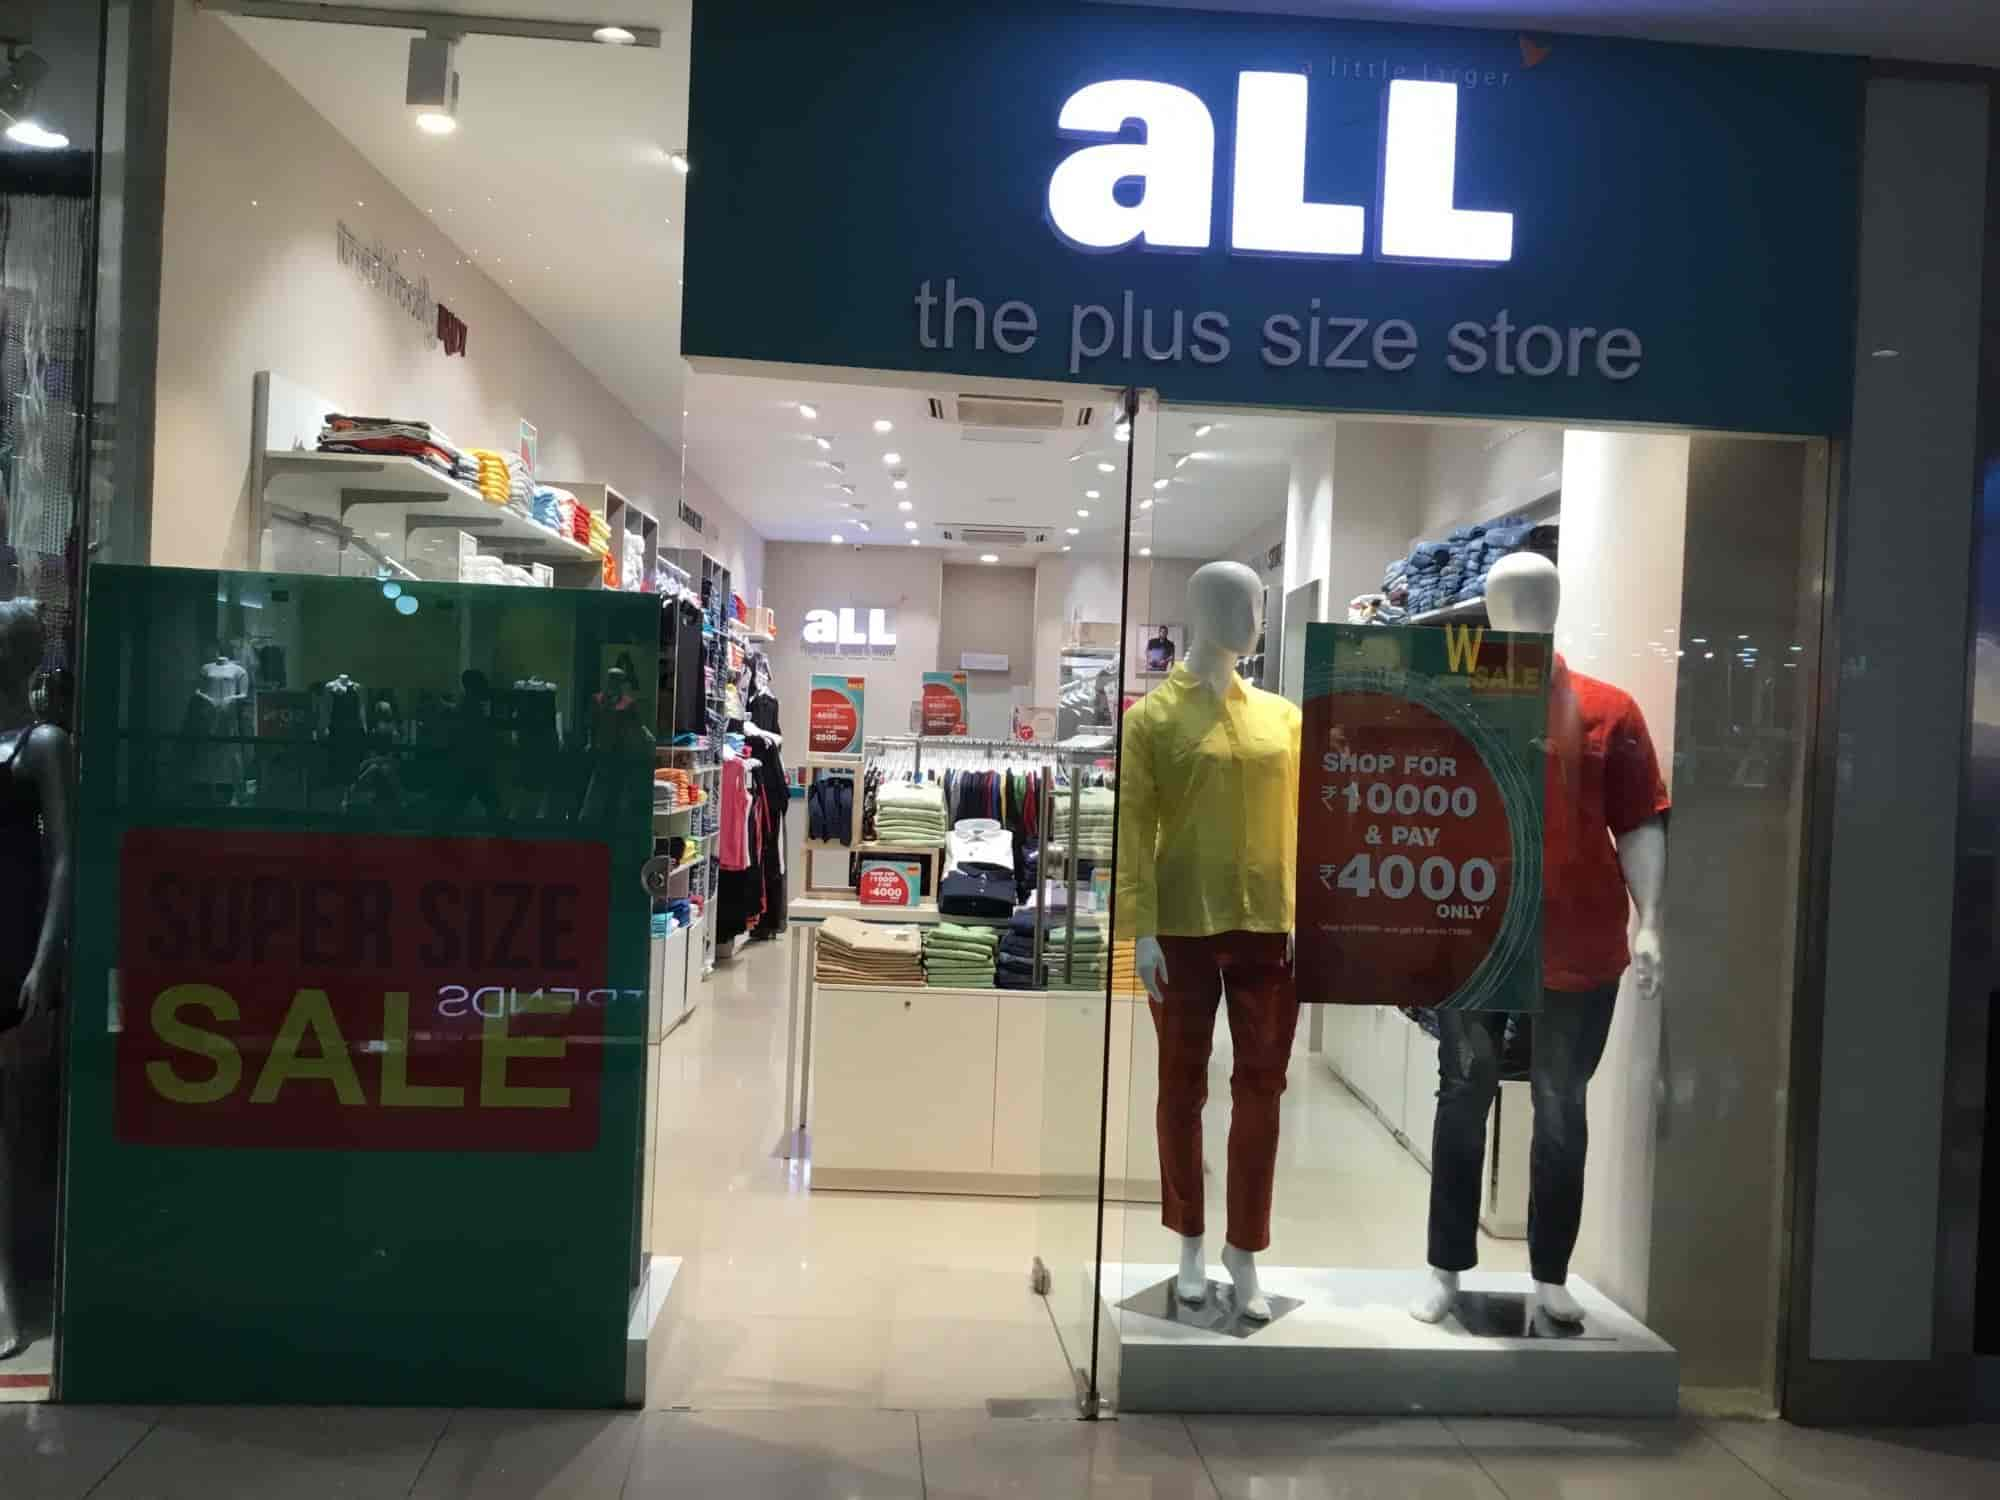 all the plus size store, m p nagar - readymade garment retailers